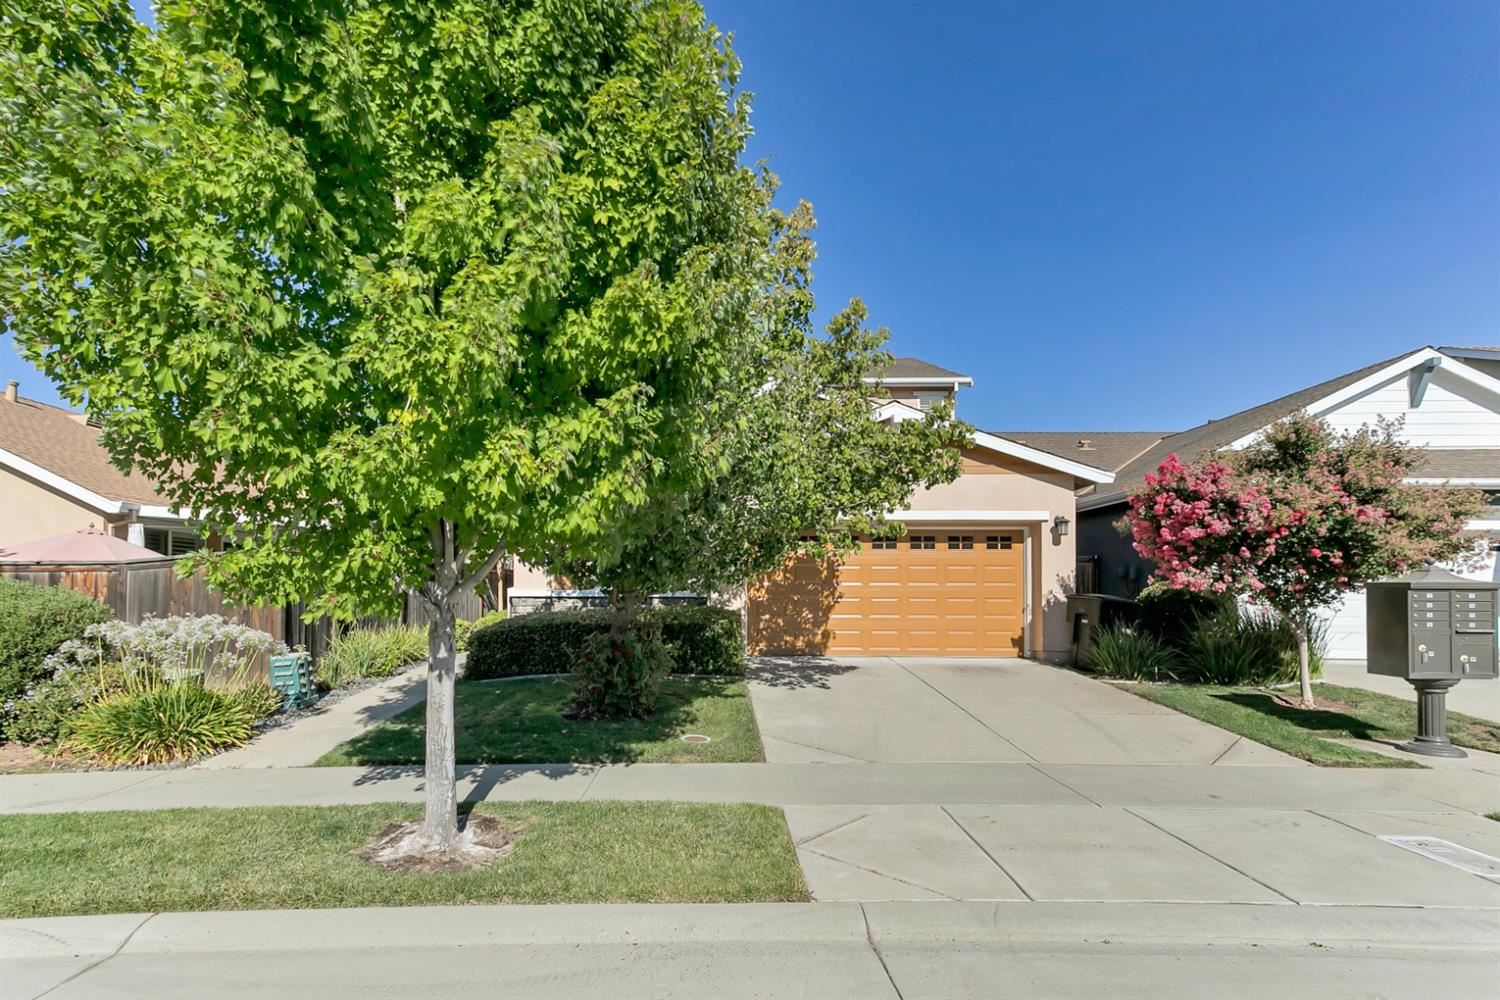 1906 Orchard View Road, Roseville, CA 95747 - MLS#: 221084447